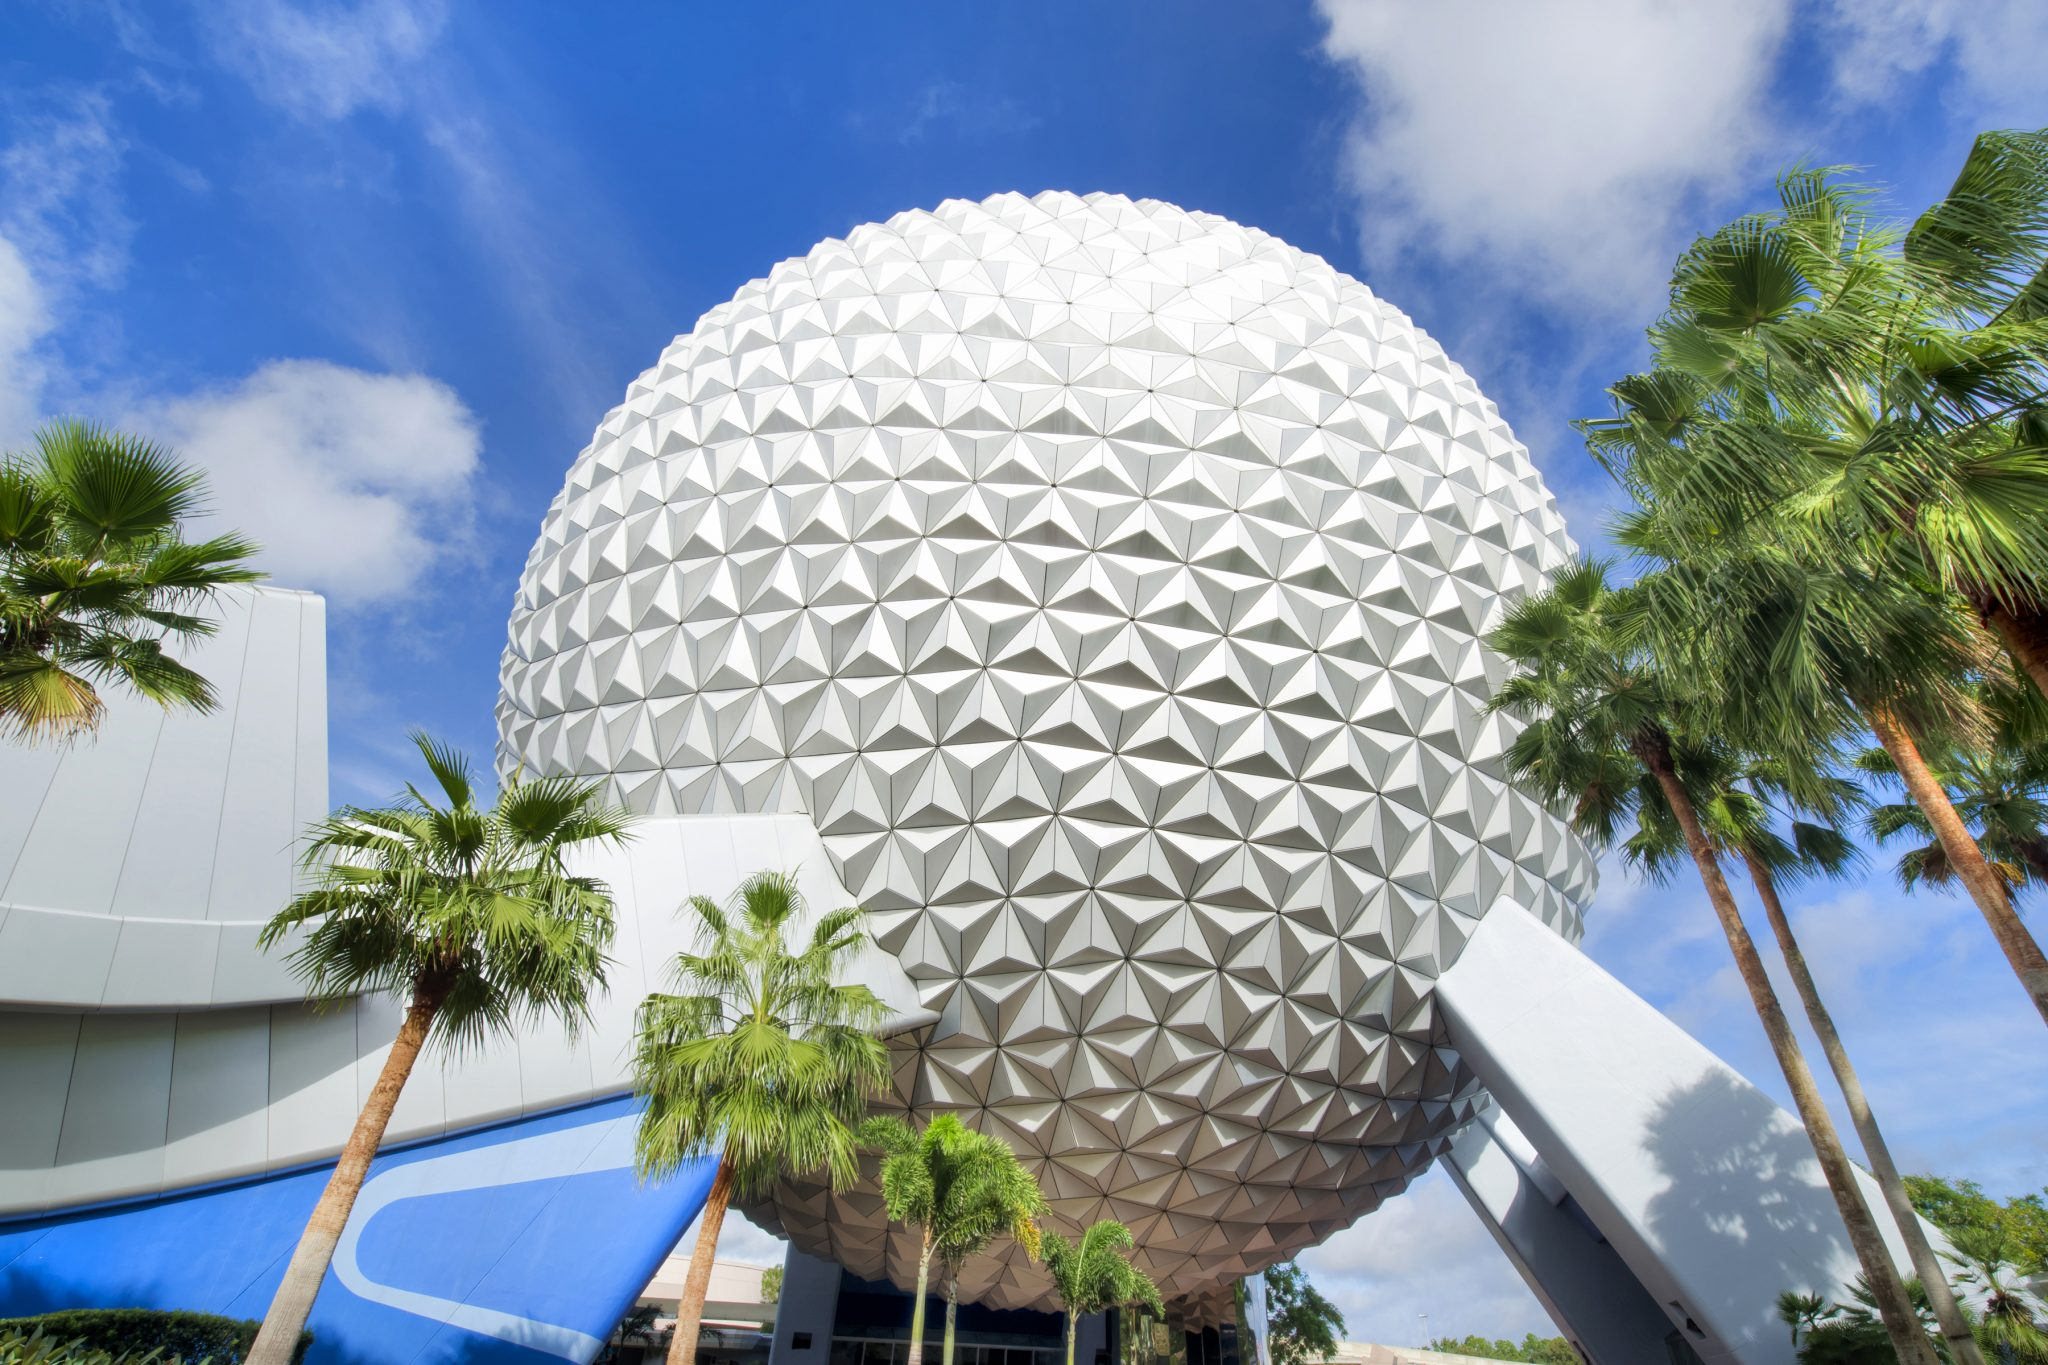 "Spaceship Earth is the visual and thematic centerpiece of Epcot at Walt Disney World Resort in Lake Buena Vista, Fla. The geodesic dome weighs 16 million pounds and the outer ""skin"" of Spaceship Earth is made up of 11,324 aluminum and plastic-alloy triangles. The attraction inside Spaceship Earth presented by Siemens includes a time-travel adventure through the history of communication, showing how the spirit of innovation has moved people from the caves to the cosmos. (Gene Duncan, photographer)"